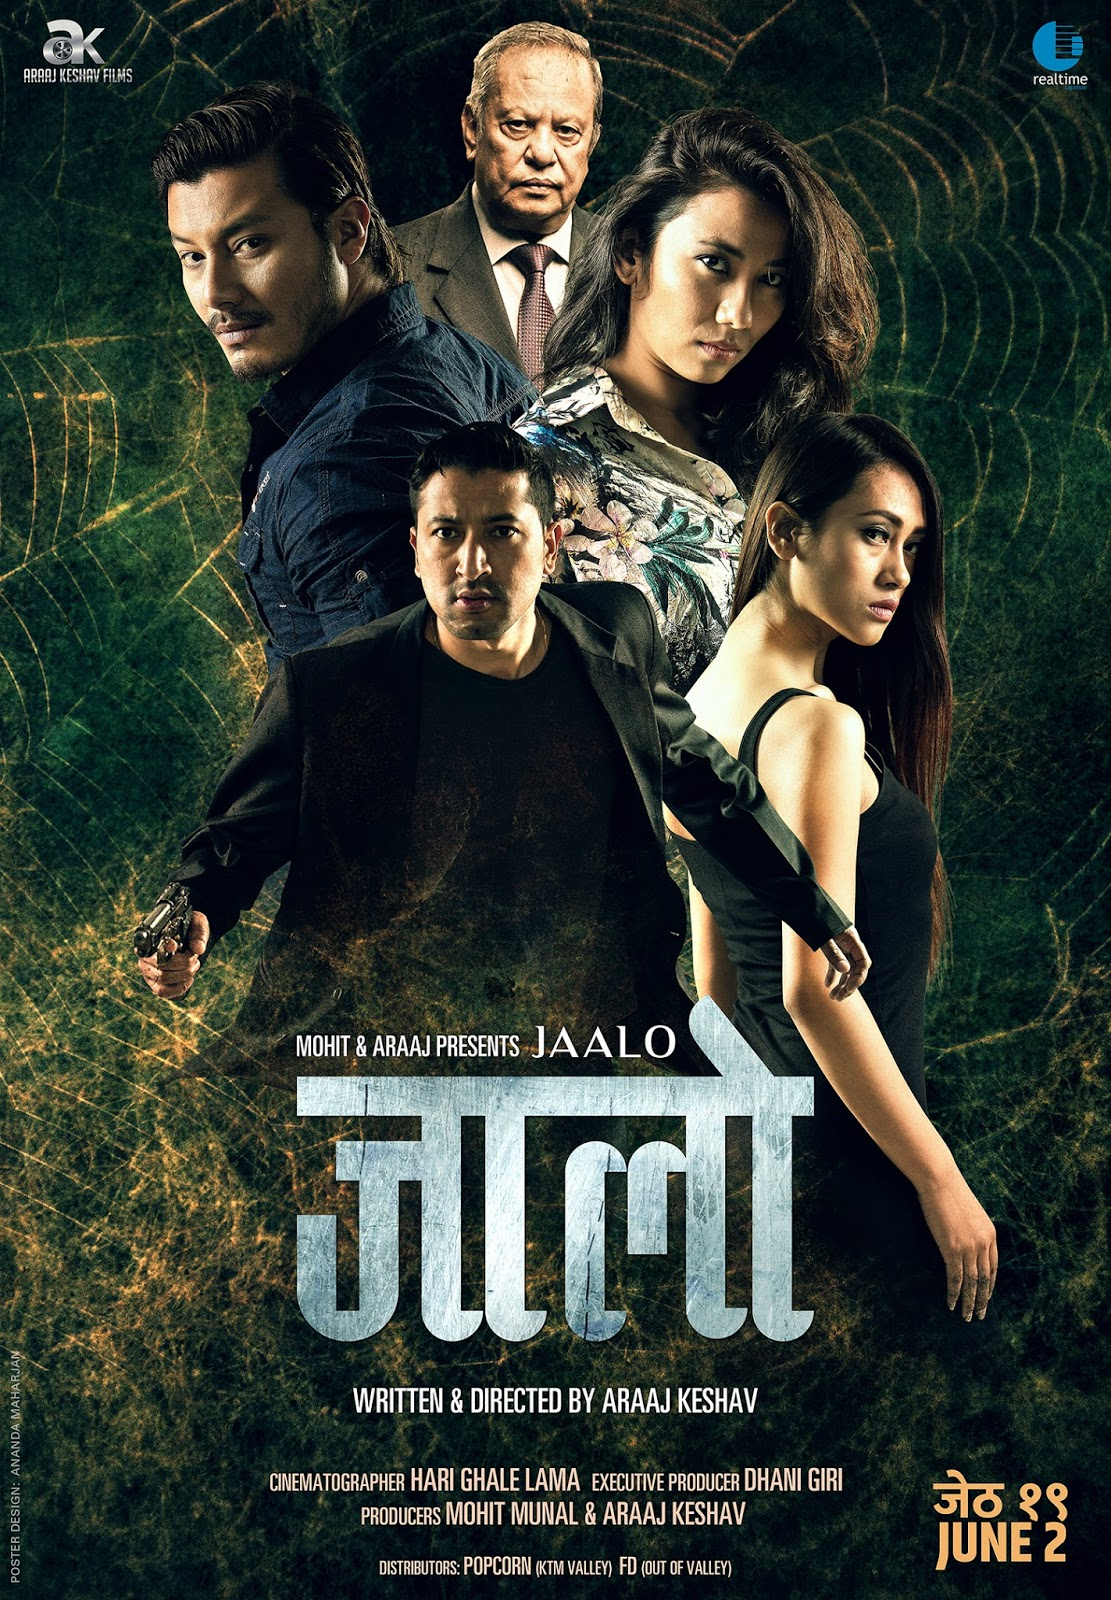 The Best 10 Nepali Movies Available on YouTube - Mero Kalam